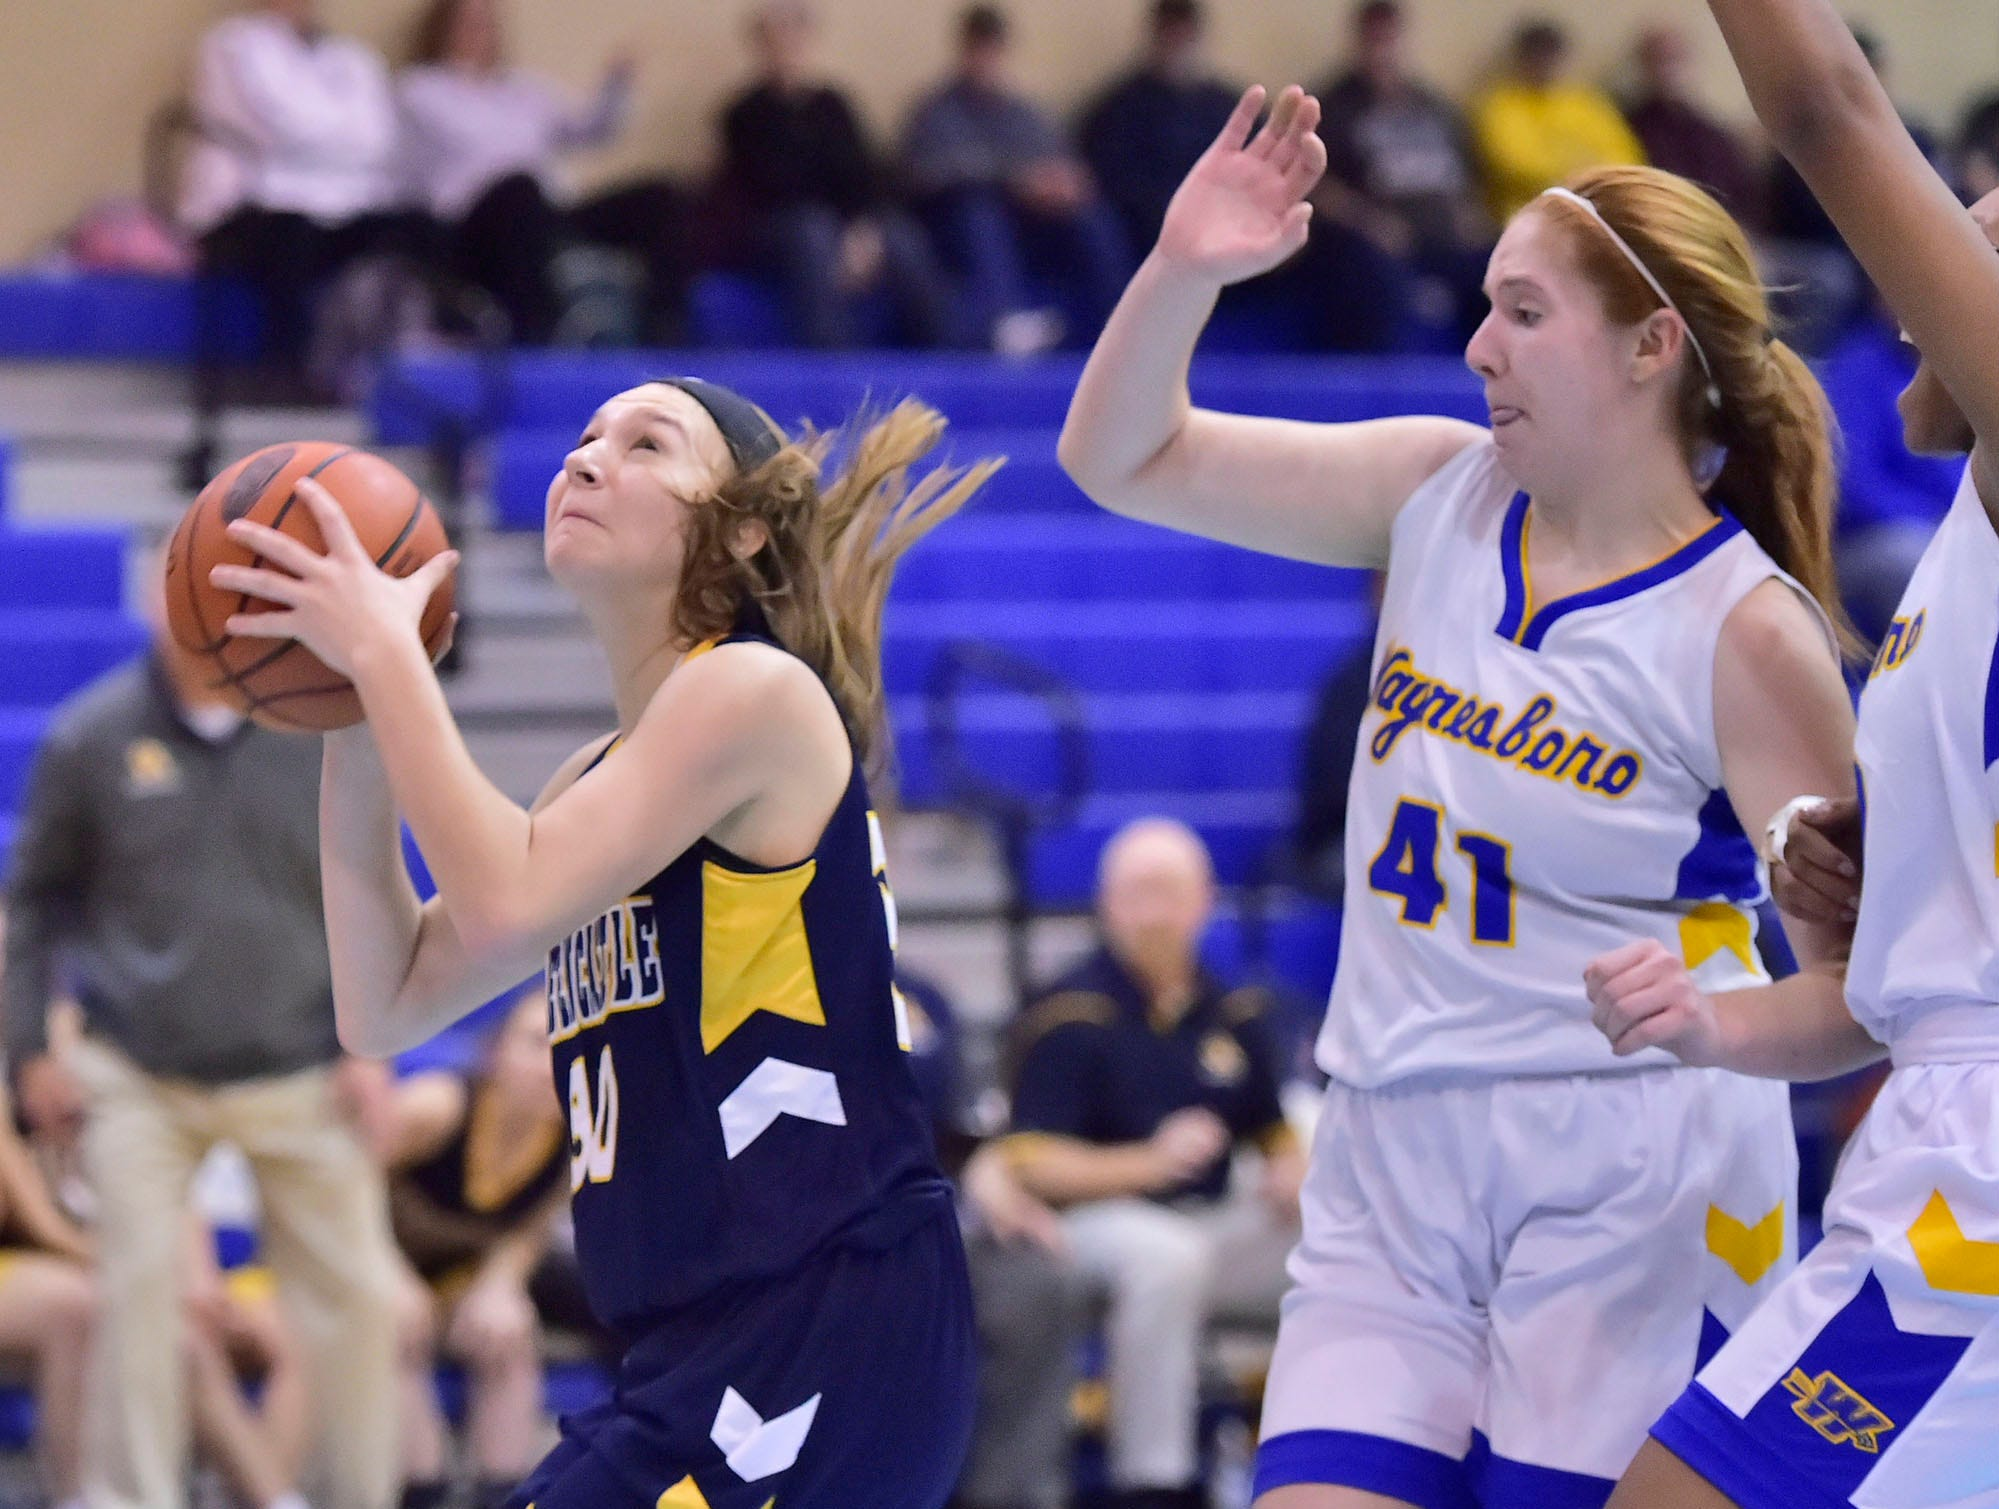 Greencastle's Lauren Pool (30) shoots past Waynesboro's Abby Sheasley (41) during the Franklin County Tip-Off Tournament, Friday, Dec. 7, 2018.